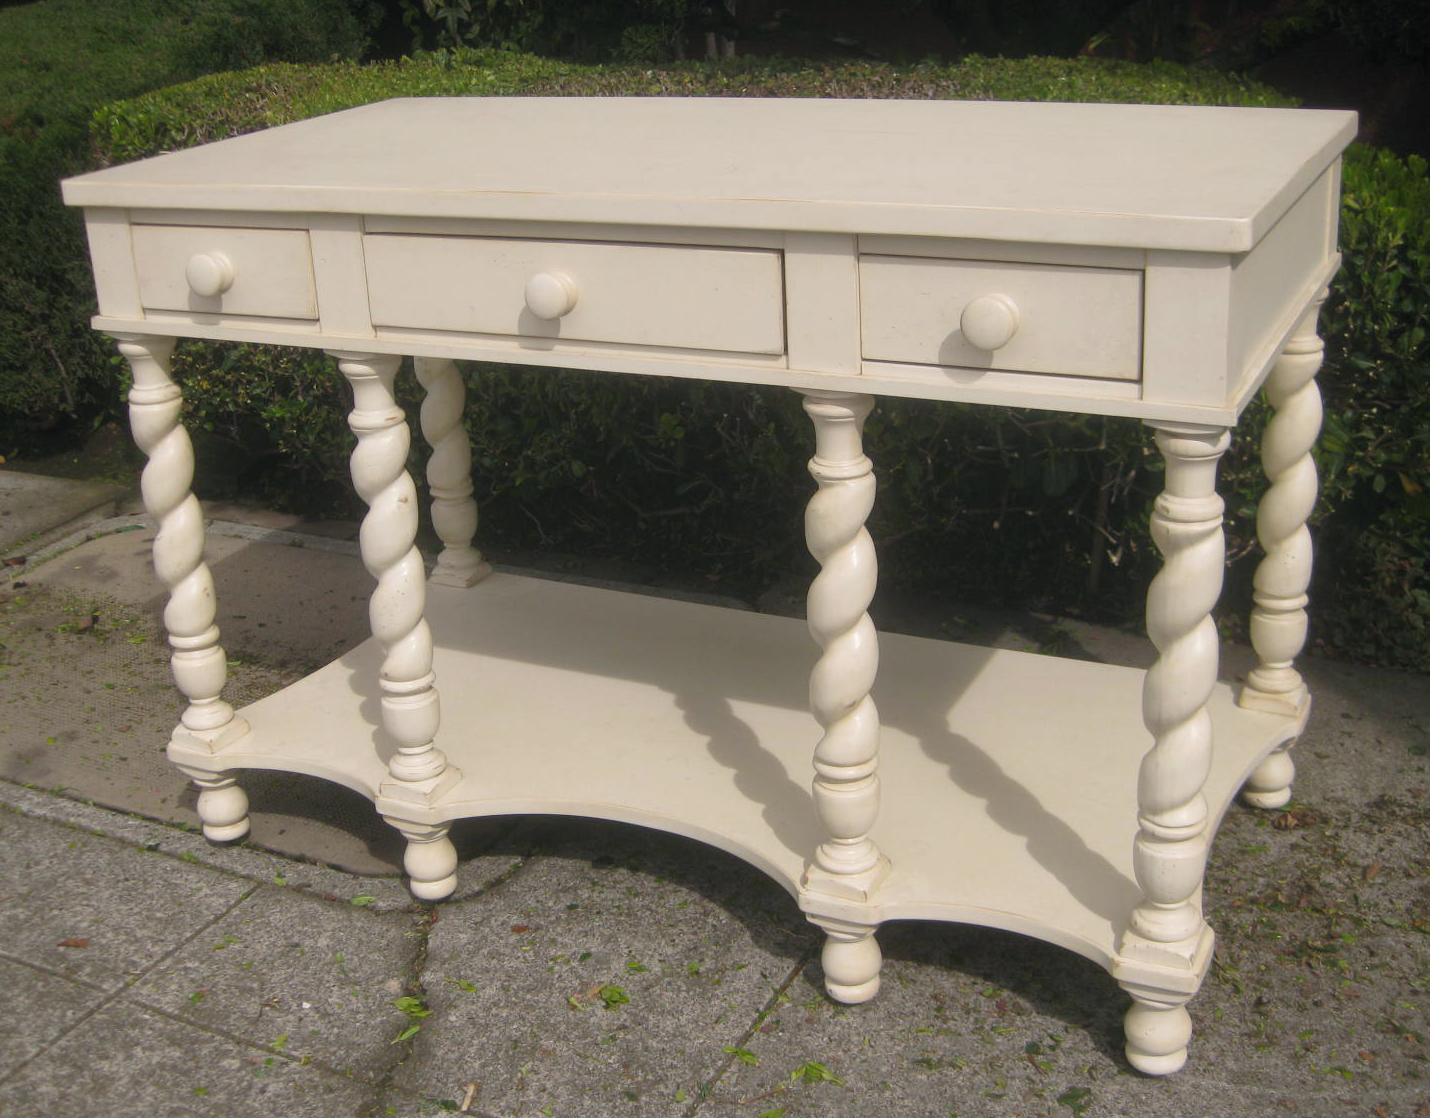 Uhuru furniture collectibles sold italian style - Table console extensible solde ...